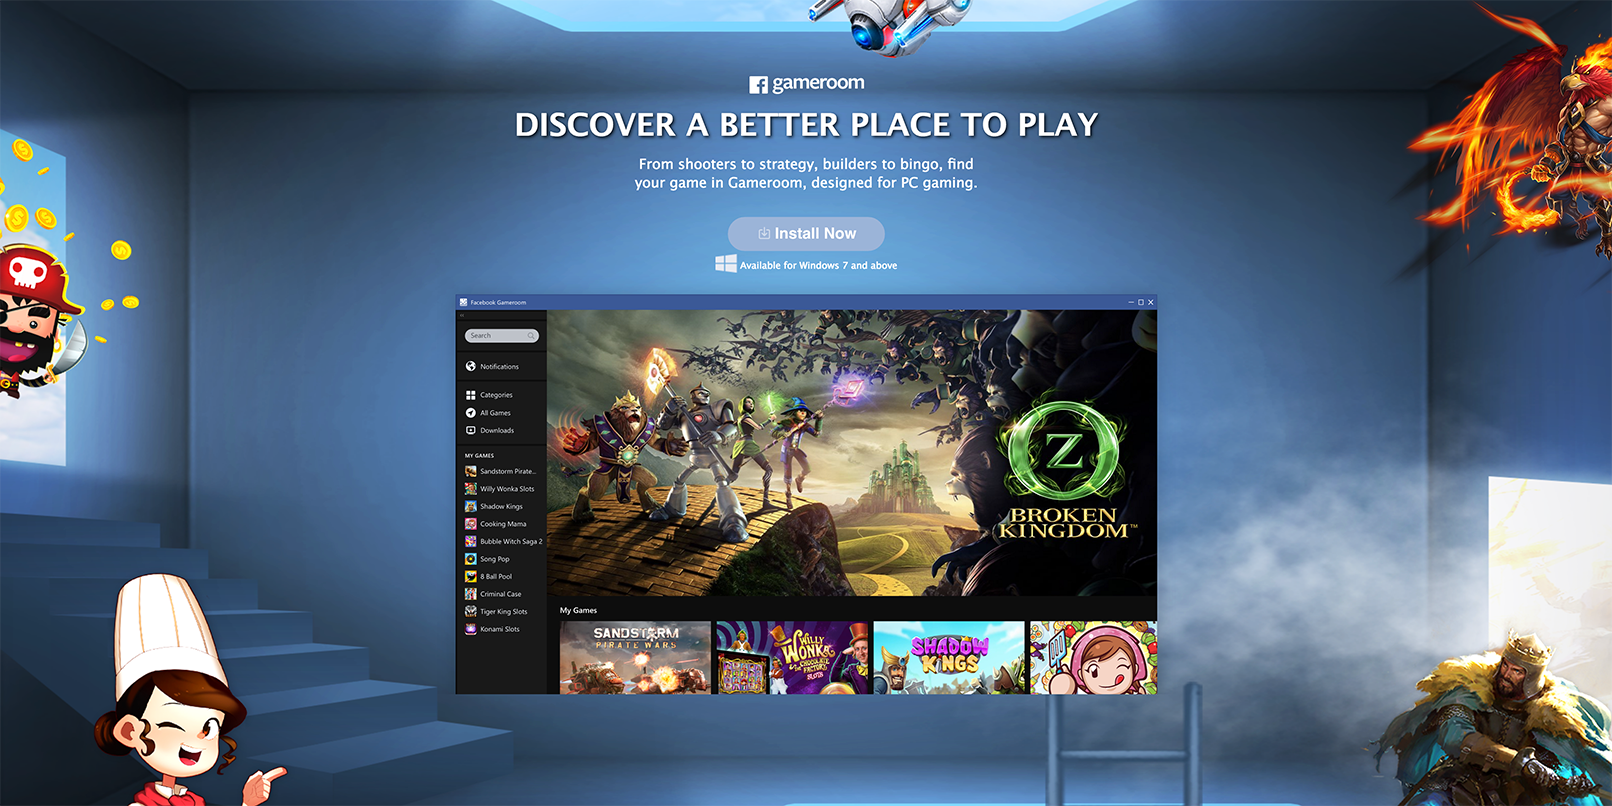 Facebook has Steam in its crosshairs with new 'Gameroom' platform